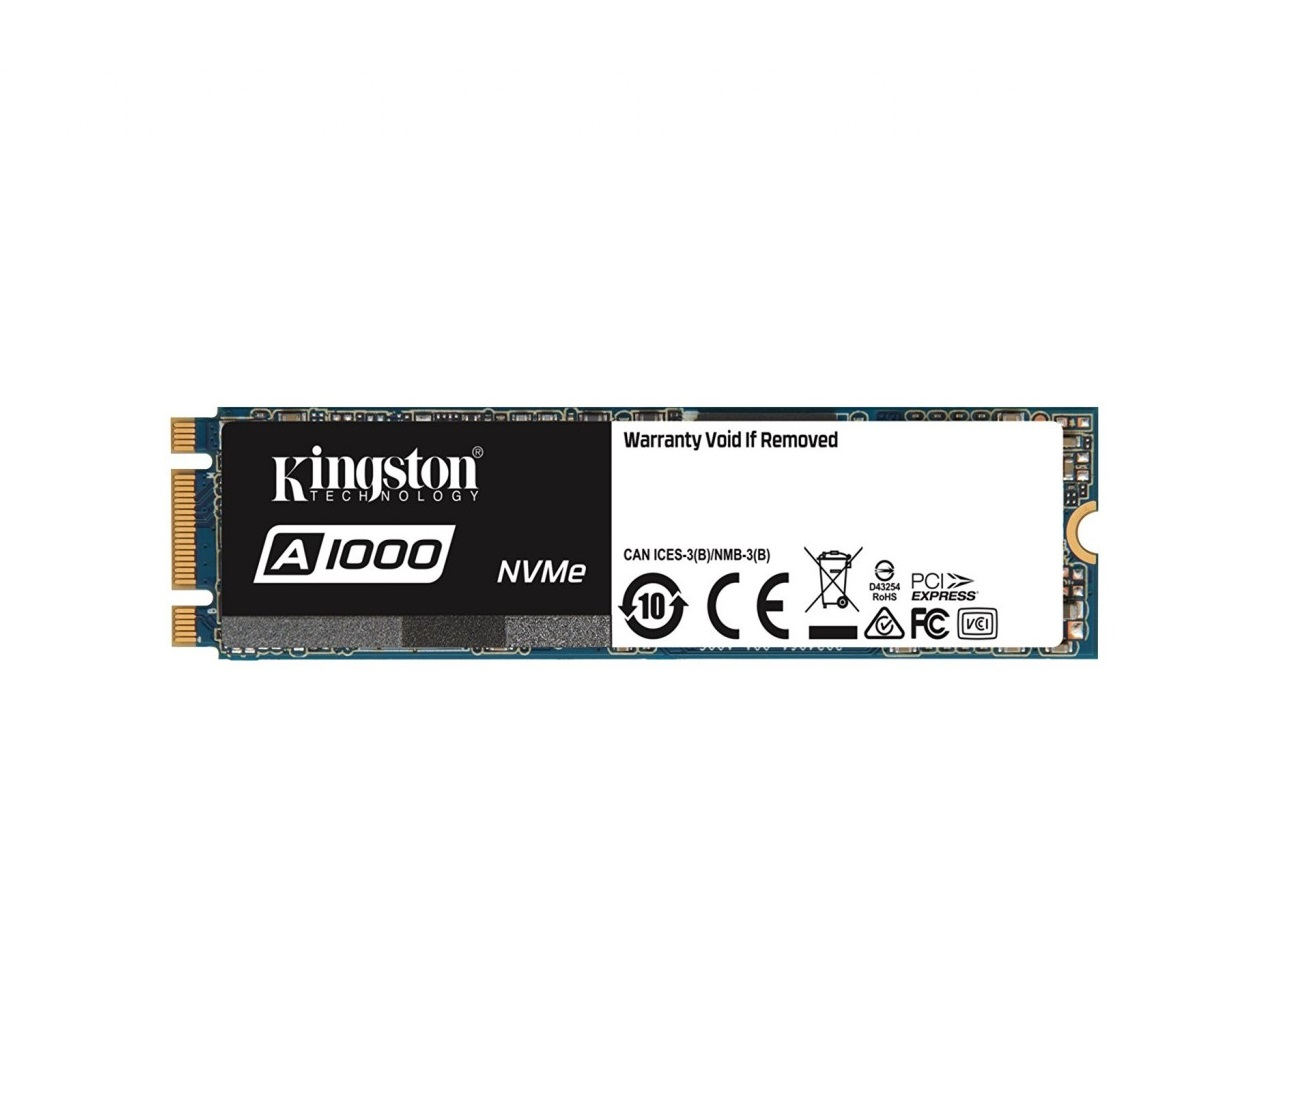 SSD Kingston A1000 240GB NVMe M.2 2280 PCIe Gen 3.0 x2